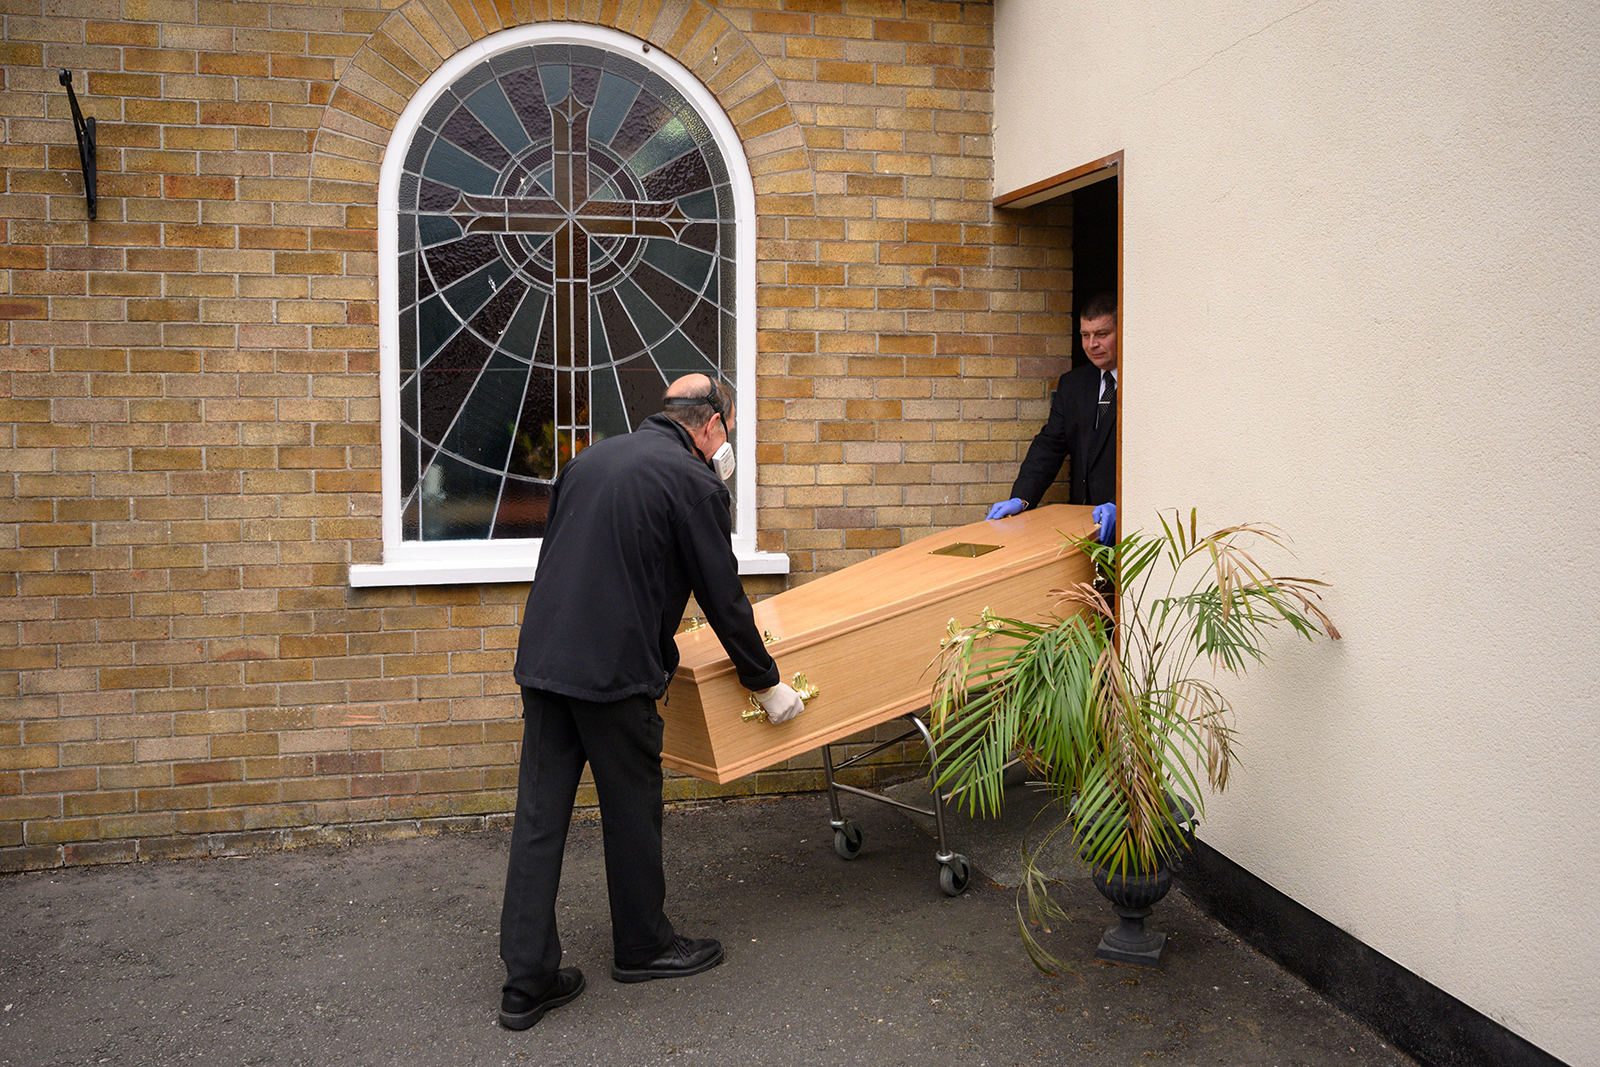 Funeral service workers load the coffin of a person who tested positive for Covid-19 into a hearse at their funeral home in Manchester, England on May 26.